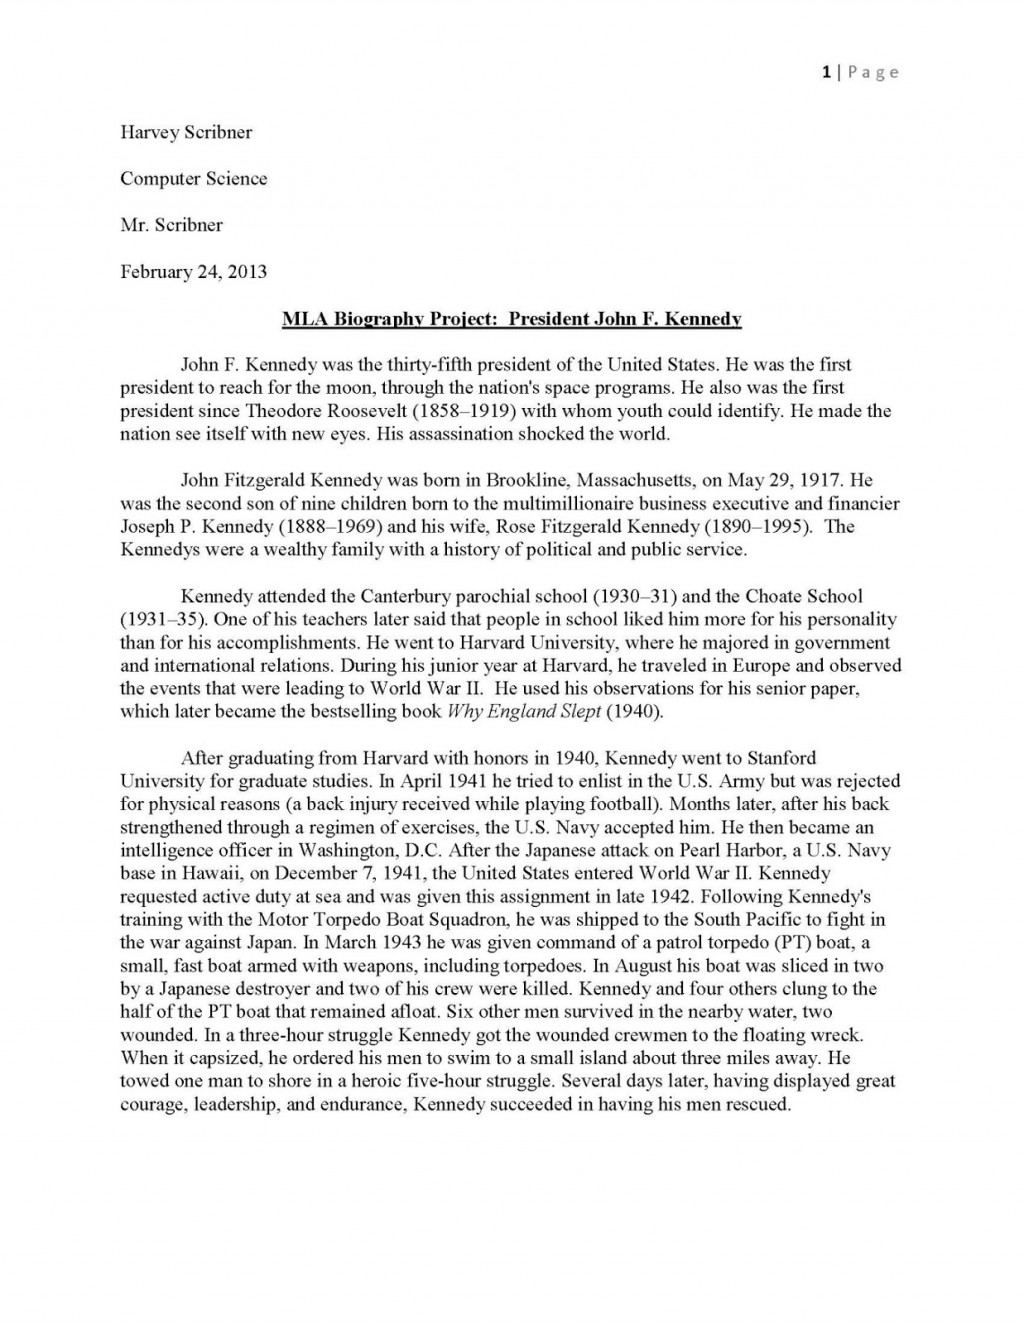 013 Essay Example Jfk20mla20short20form20biography20report20example Page 1 Shocking Short Answer Rubric Apush About Slavery In America Questions Internal Medicine Large